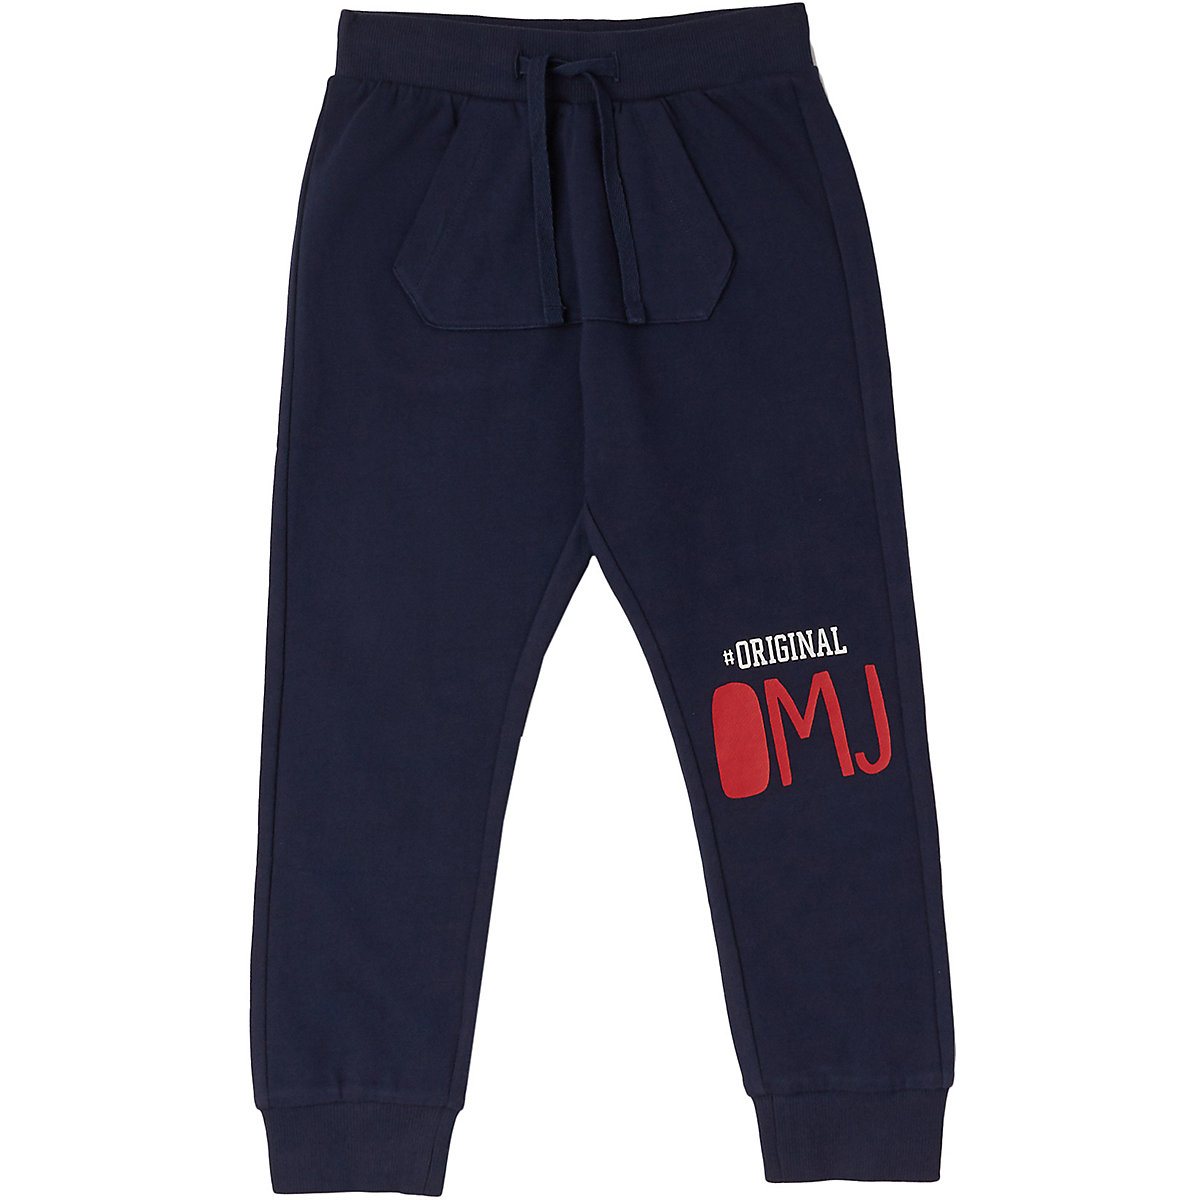 Original Marines Pants & Capris 10822524  trousers for boys boy Children clothes Kids clothing summer t shirt tops pants trousers 2017 new arrival boys clothes hot sale baby boy clothing set kid clothes outfits sets for boy